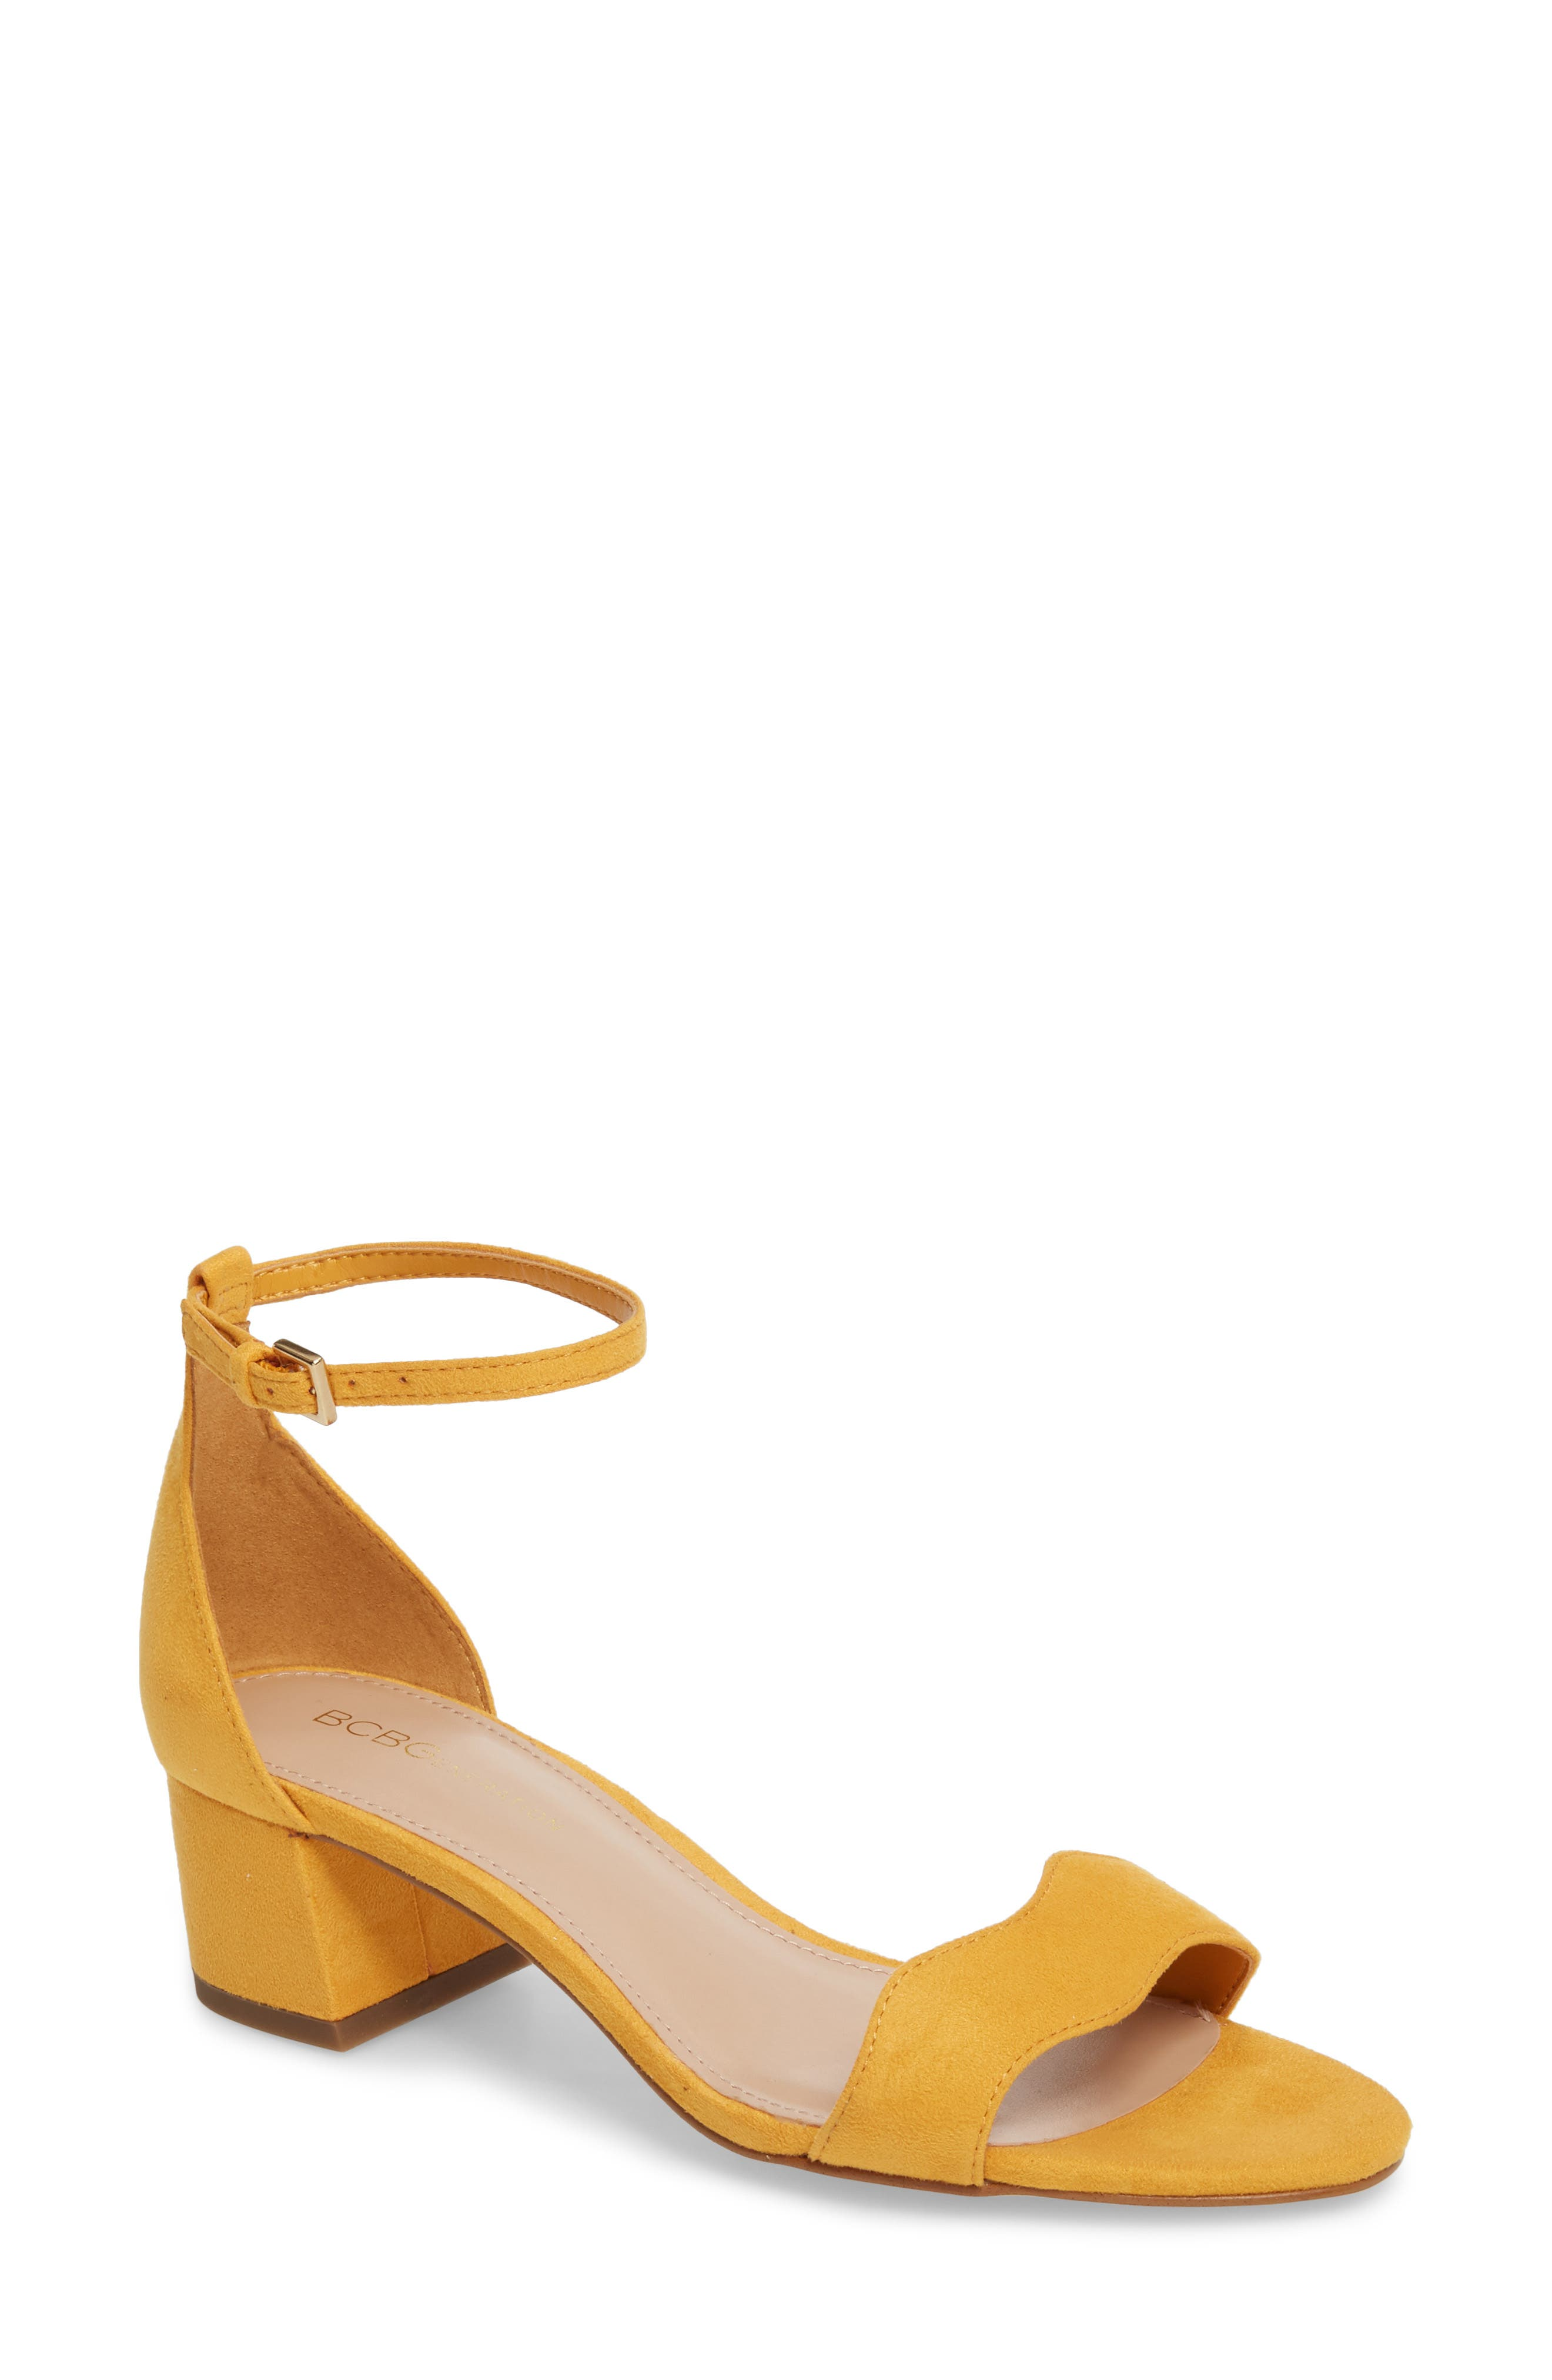 Farlyn Ankle Strap Sandal,                         Main,                         color,